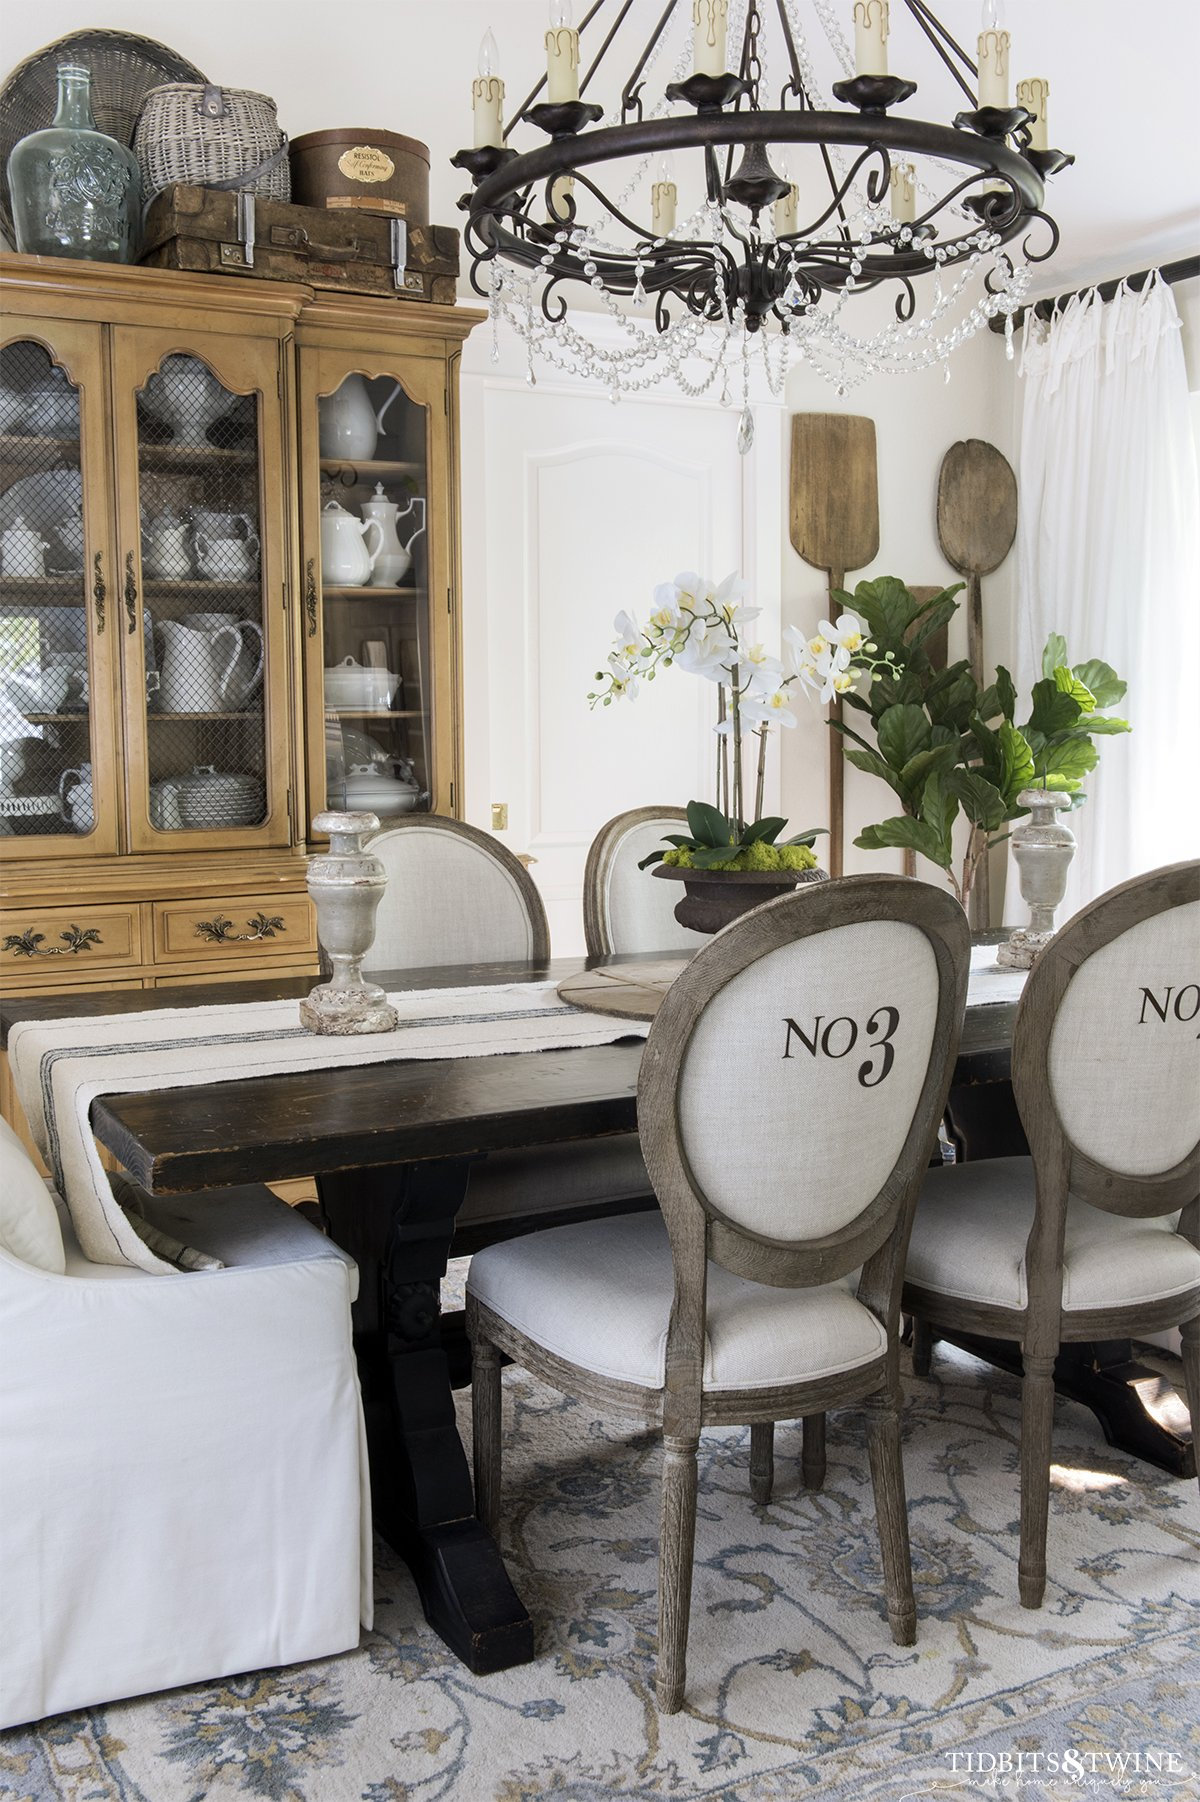 round french linen chairs with numbers on the back in dining room with white orchid on the table and vintage bread paddles hanging on the wall